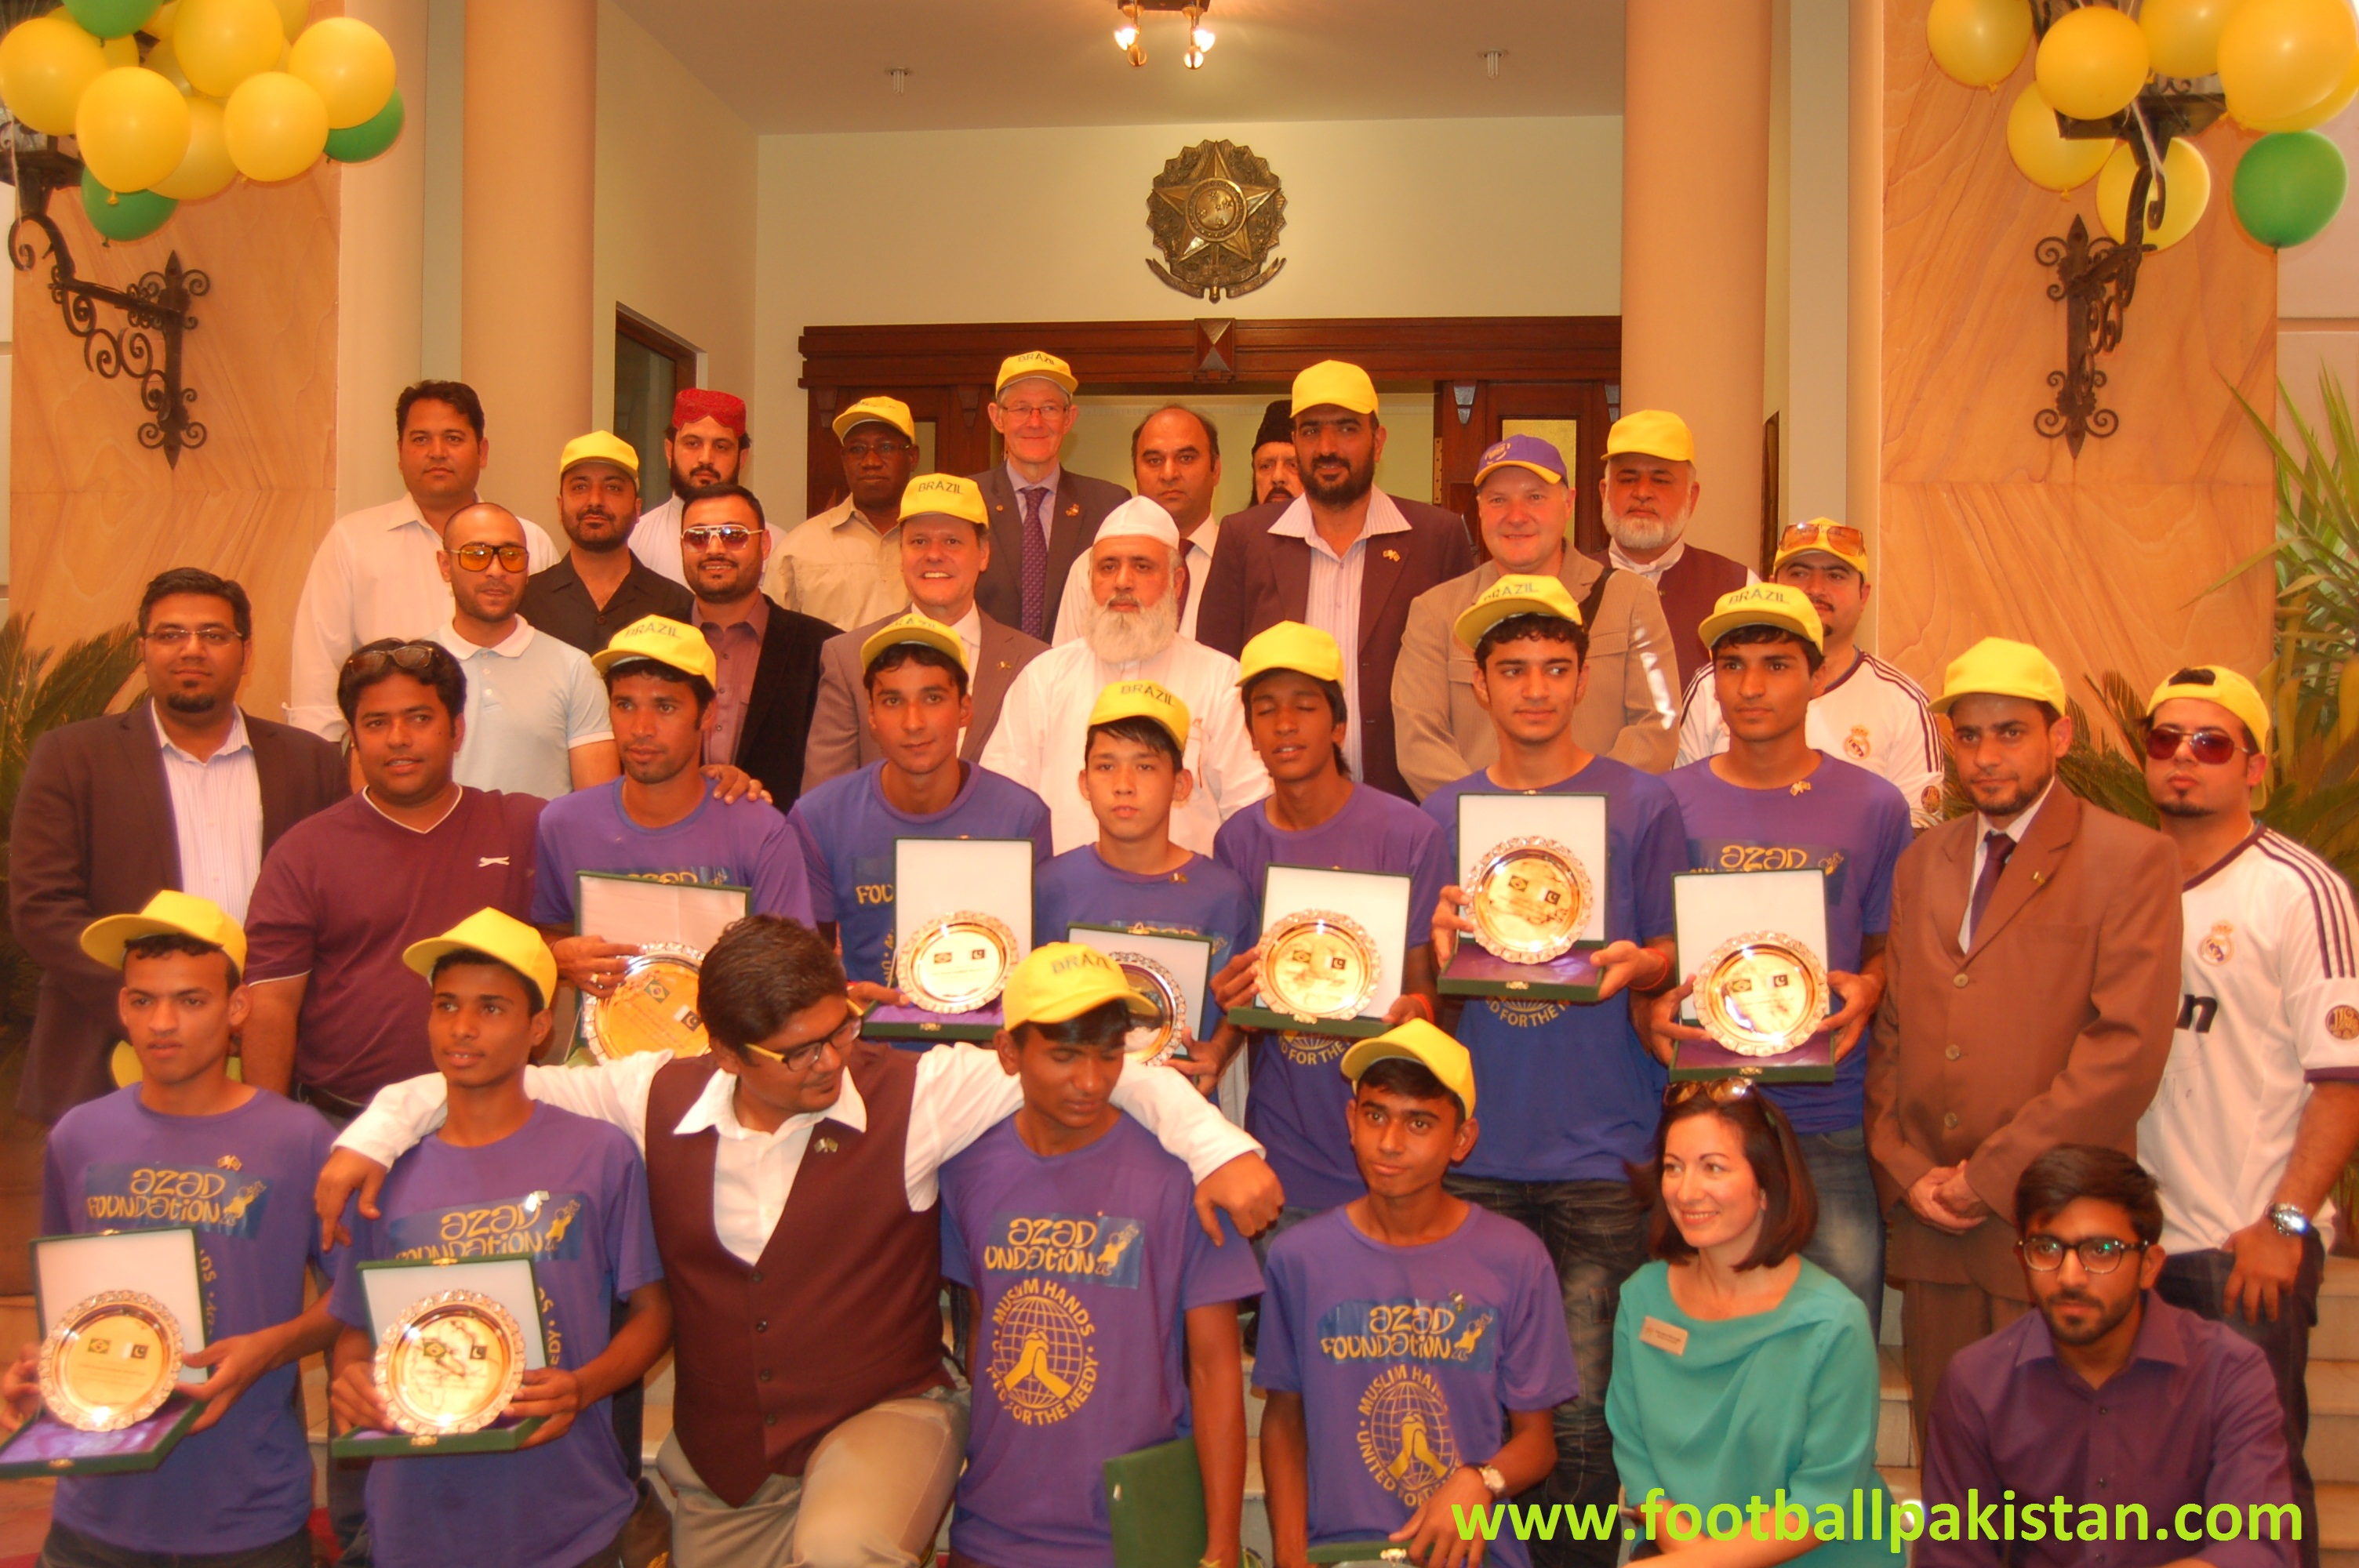 Brazil Embassy hosts special reception for the Street Child World Cup Team